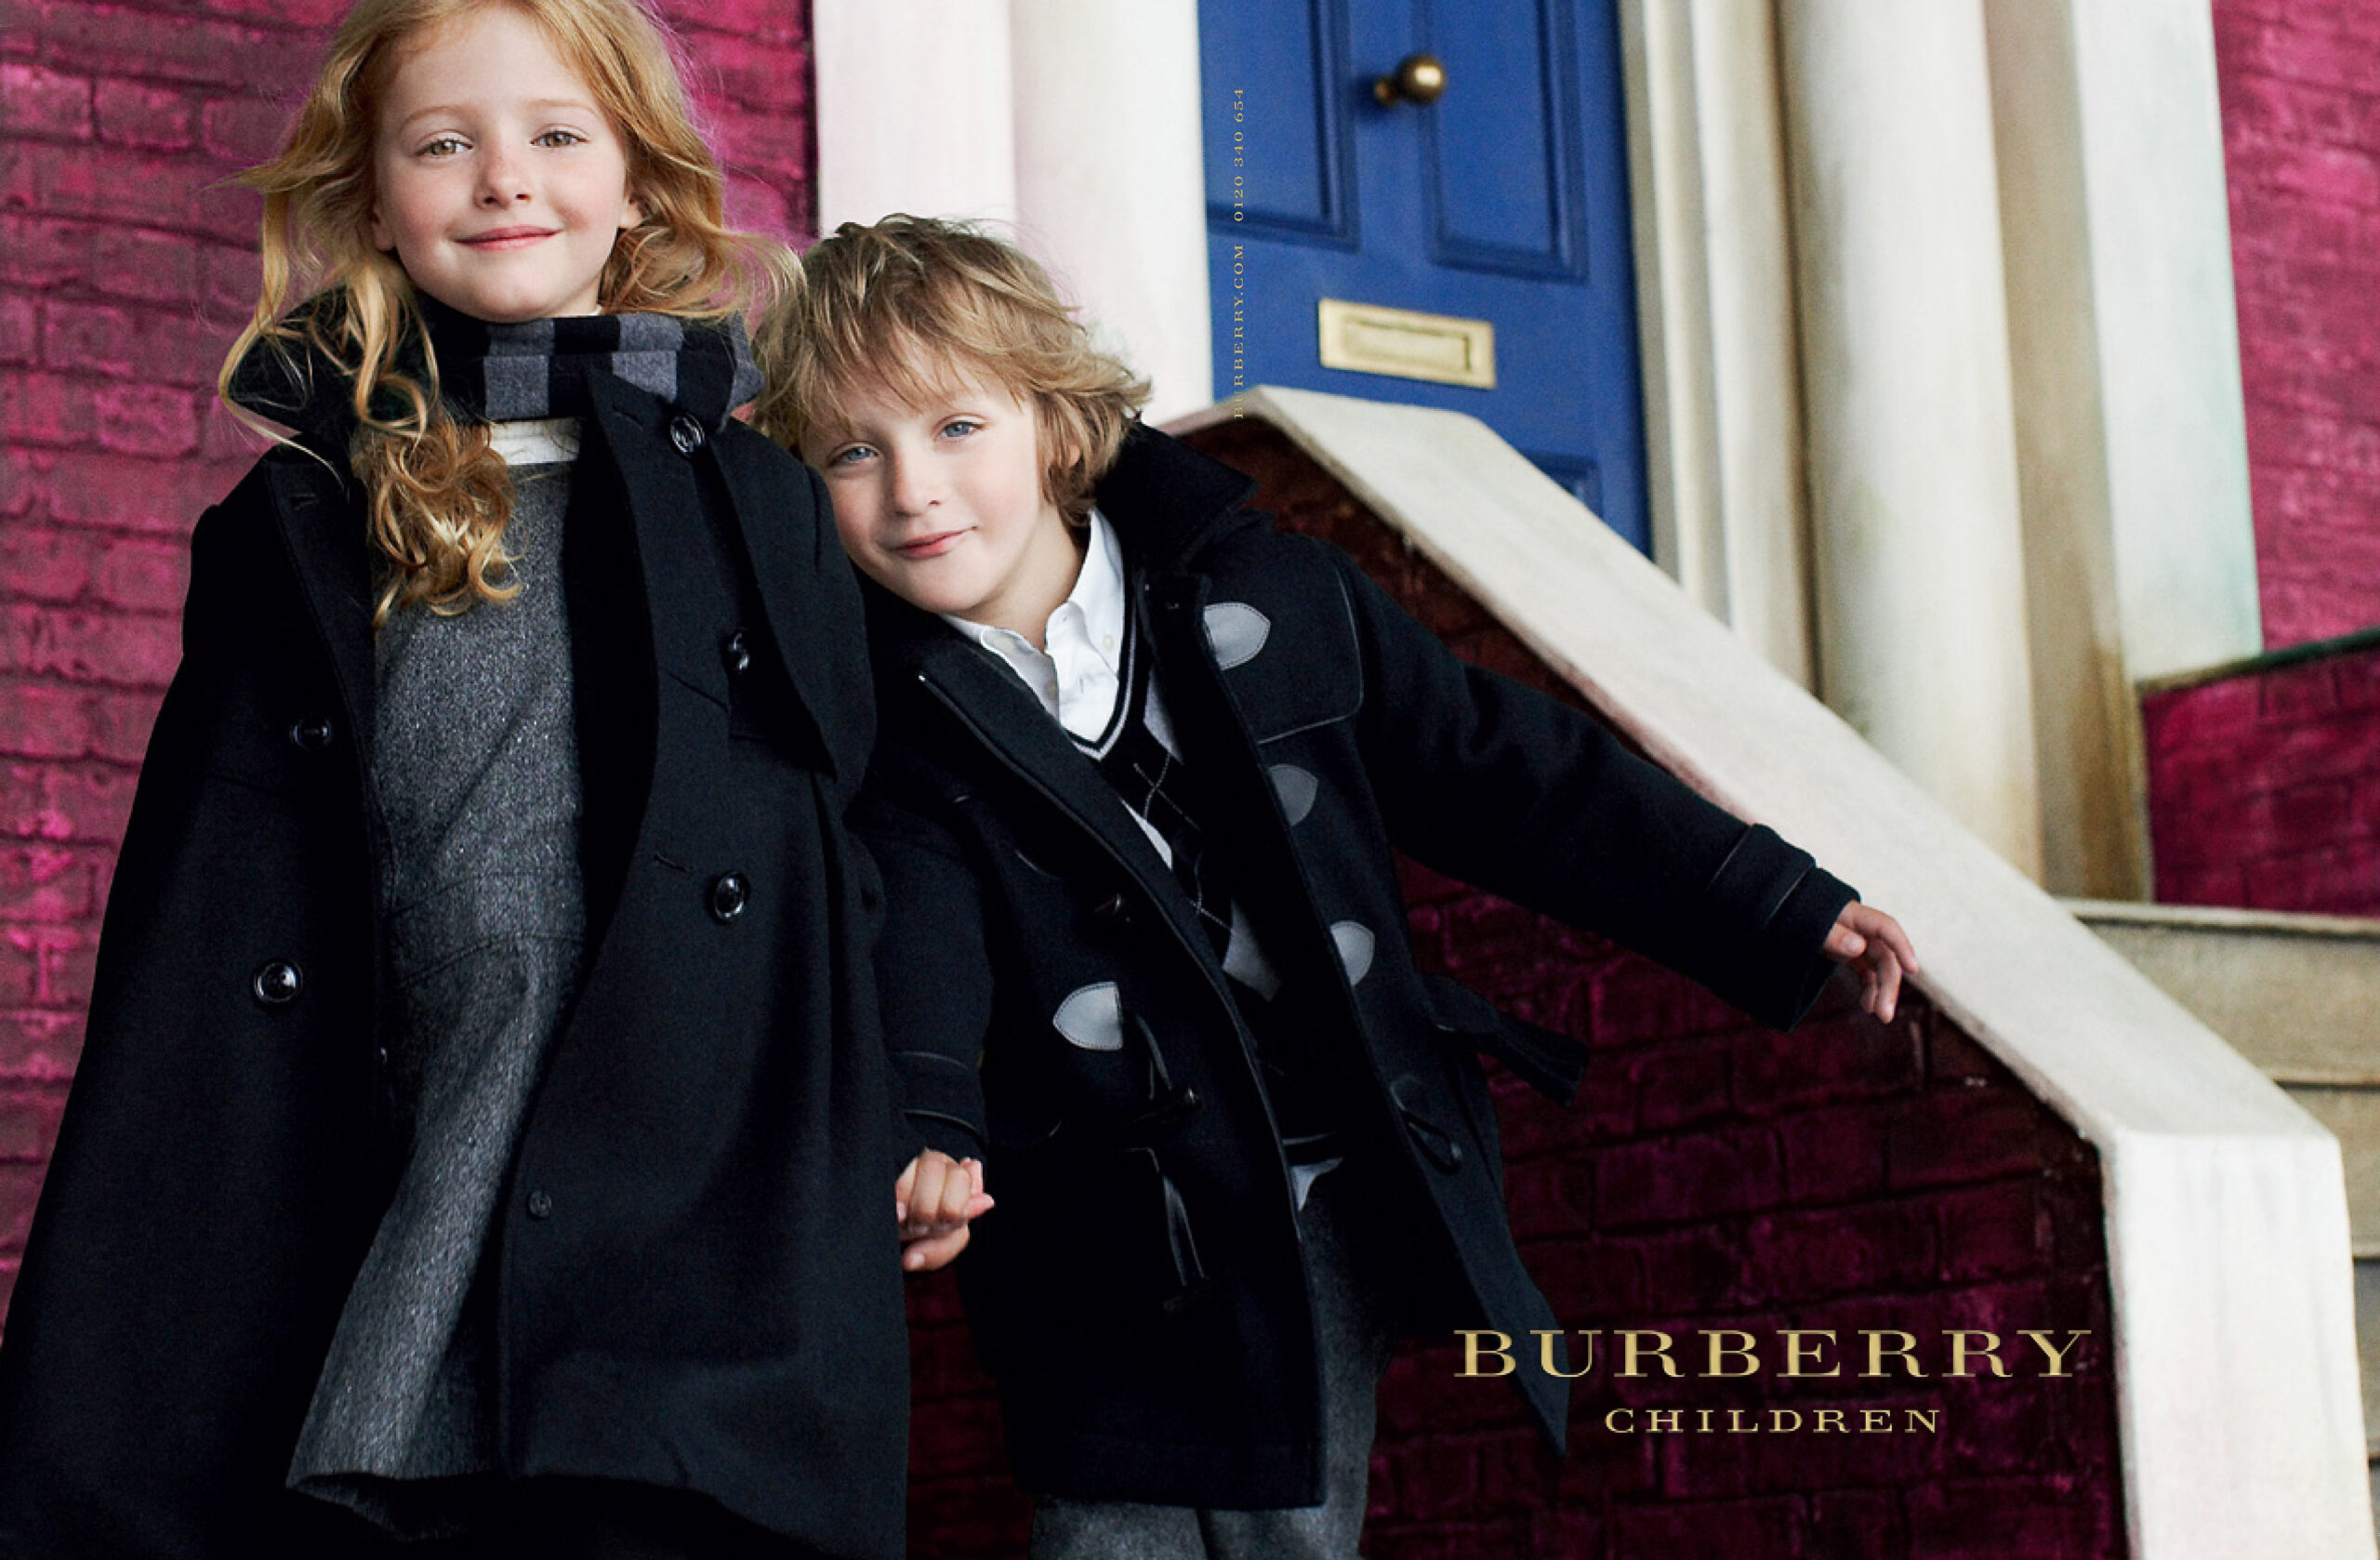 ingrid burberry children AW10_CWJ_CAMPAIGN-20 def